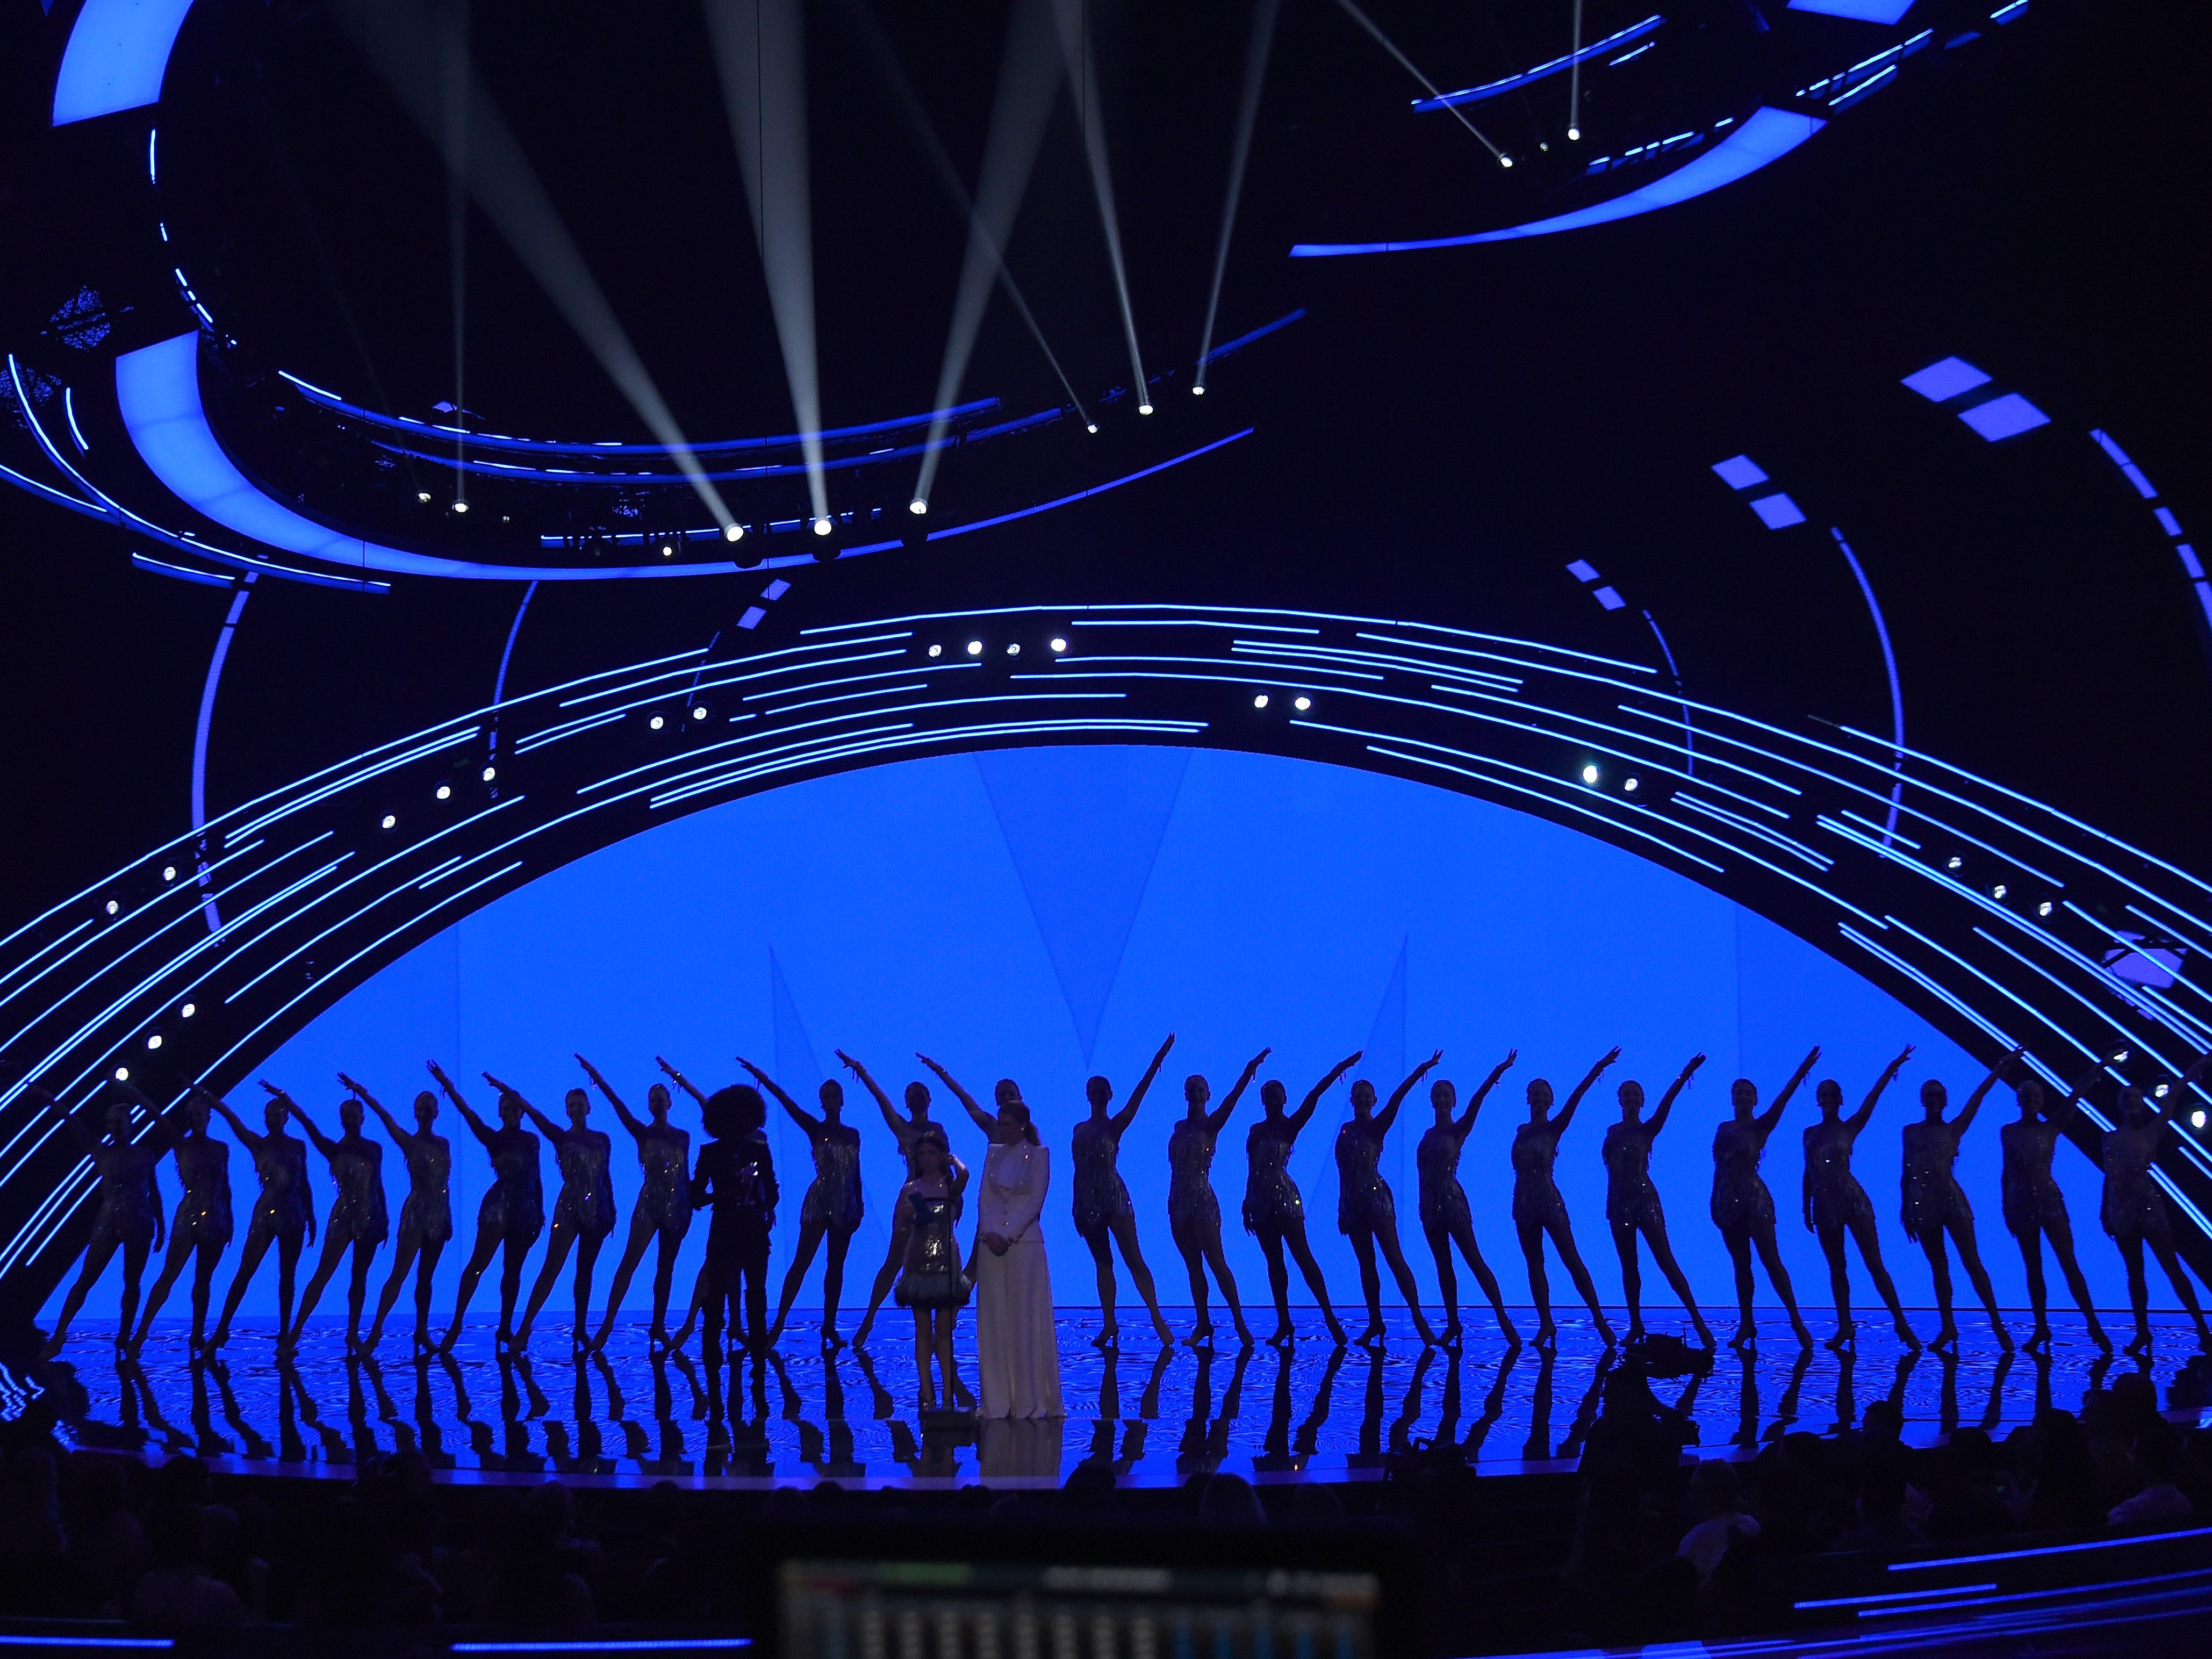 NEW YORK, NY - AUGUST 20:  Anna Kendrick, Blake Lively, and The Rockettes perform onstage during the 2018 MTV Video Music Awards at Radio City Music Hall on August 20, 2018 in New York City.  (Photo by Michael Loccisano/Getty Images for MTV) ORG XMIT: 775210297 ORIG FILE ID: 1020326948